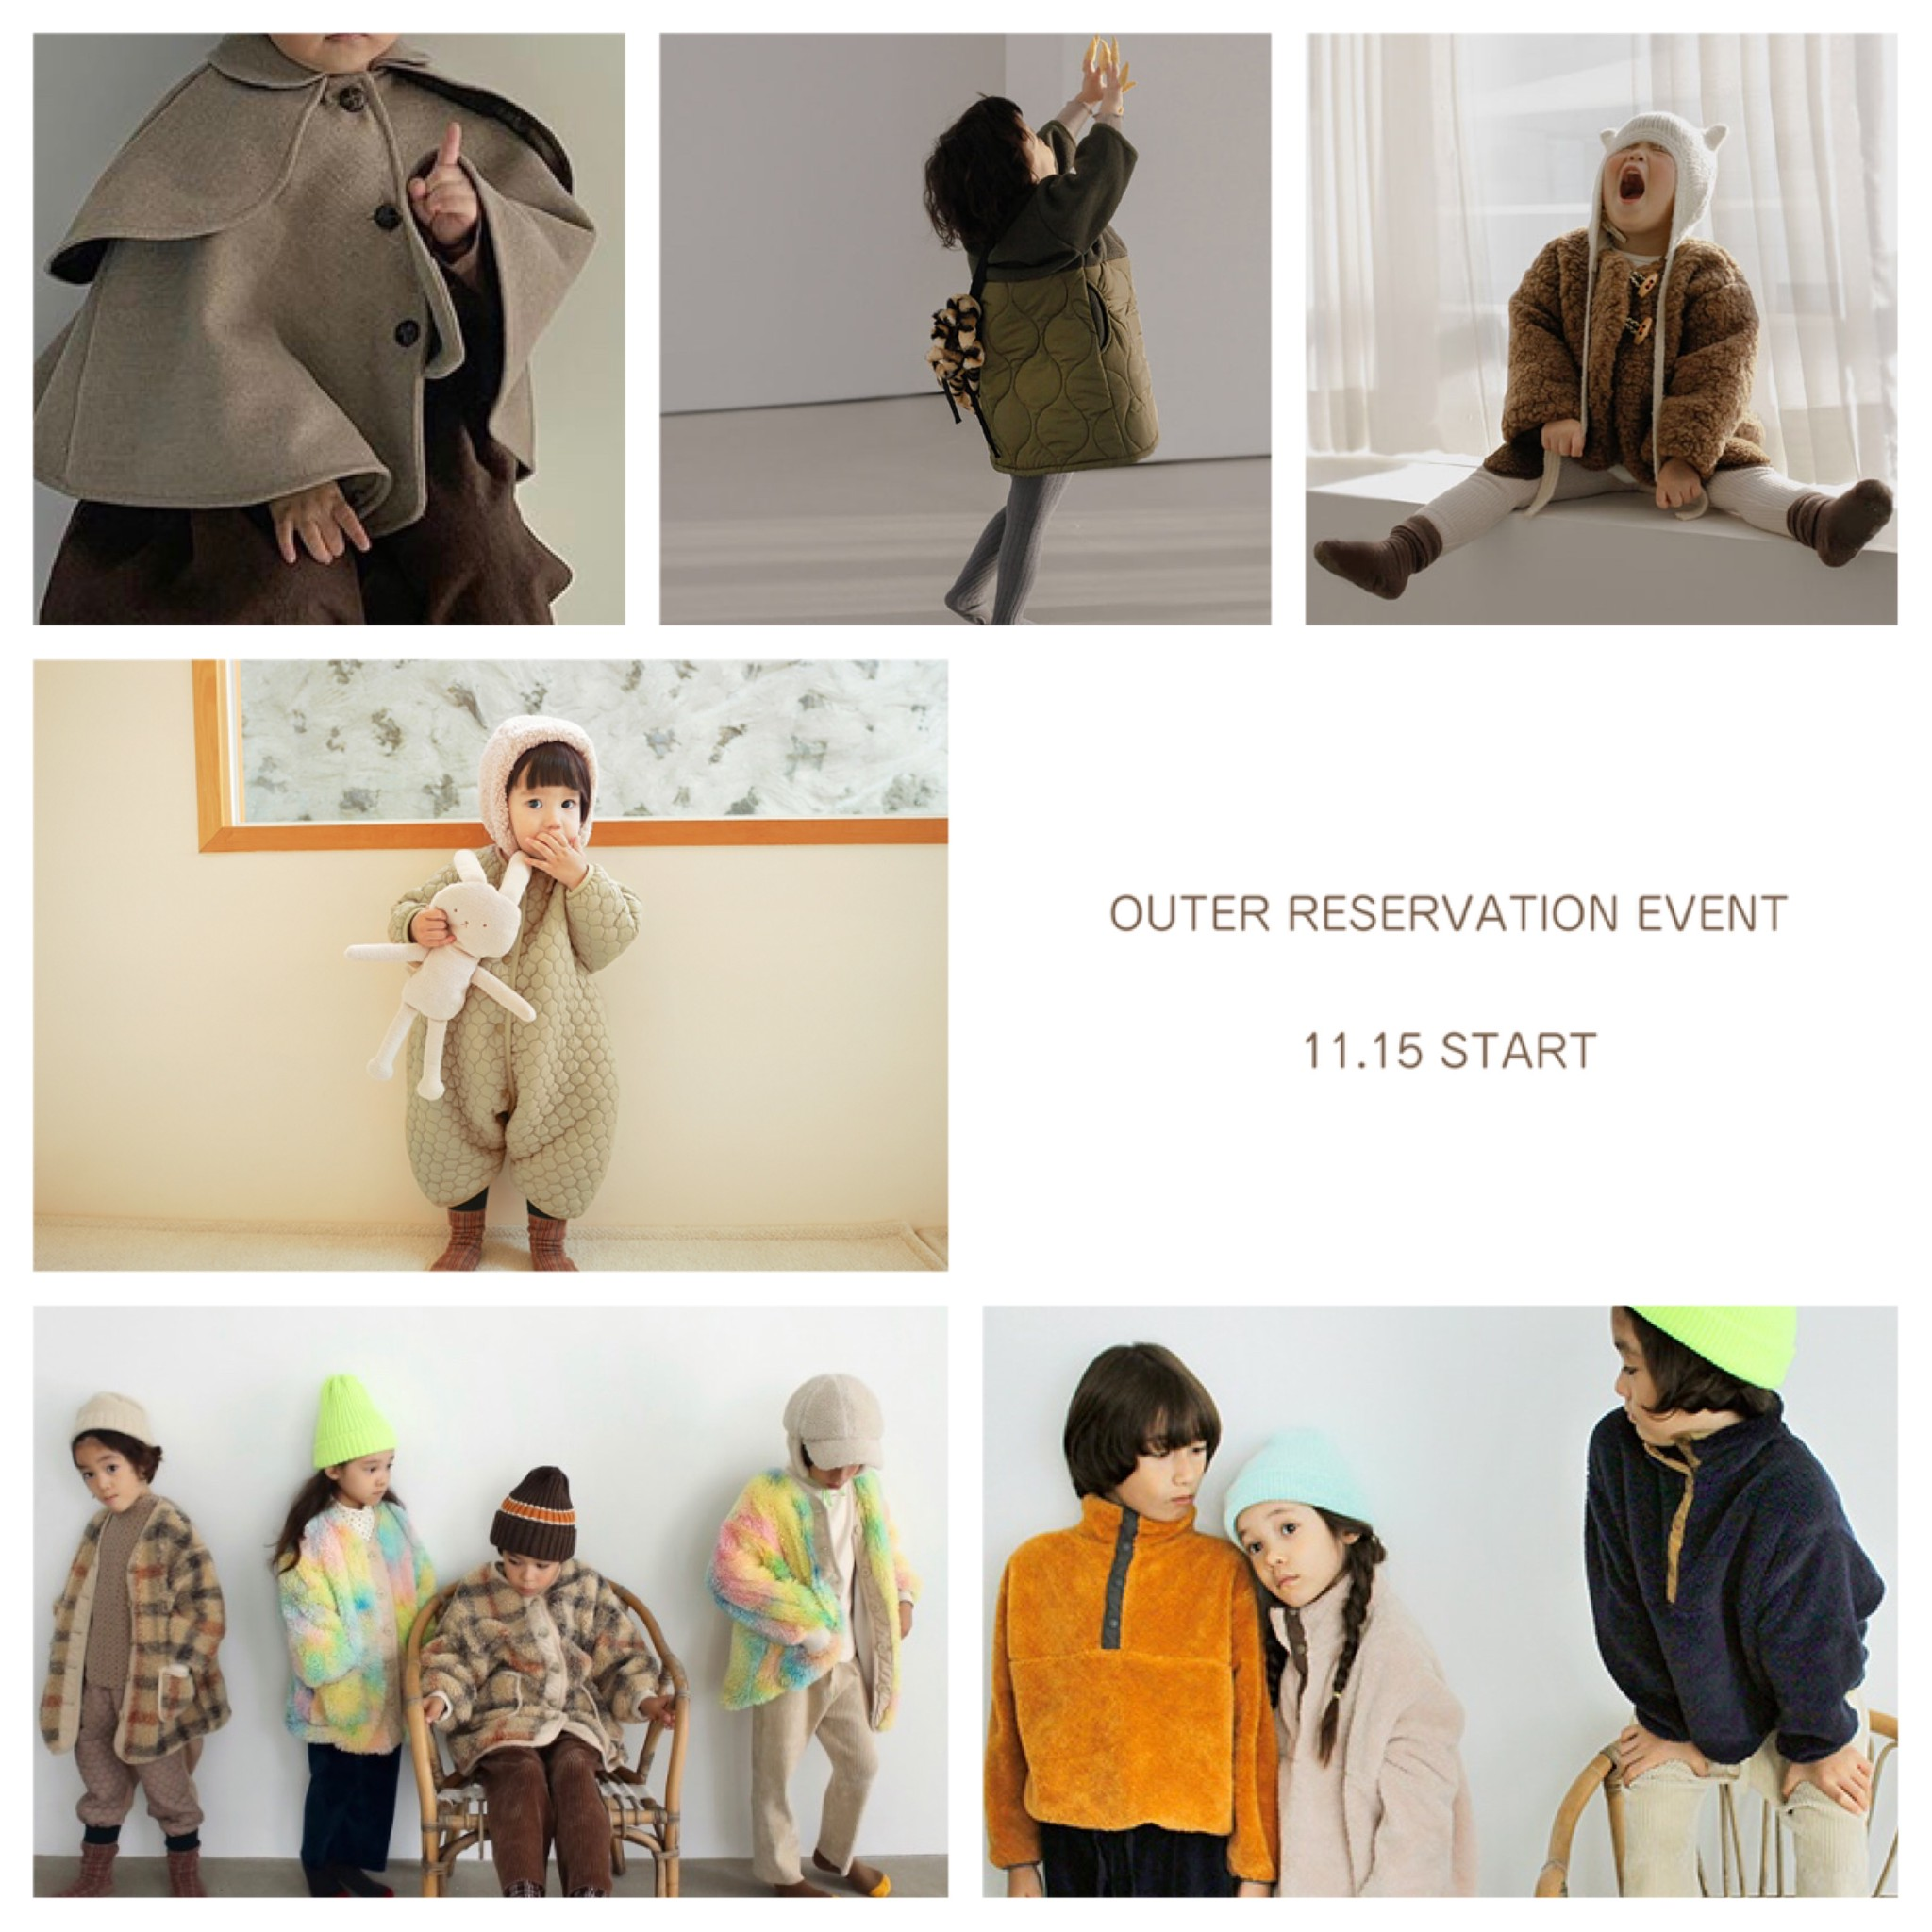 OUTER RESERVATION EVENT【11.15 - 11.21】